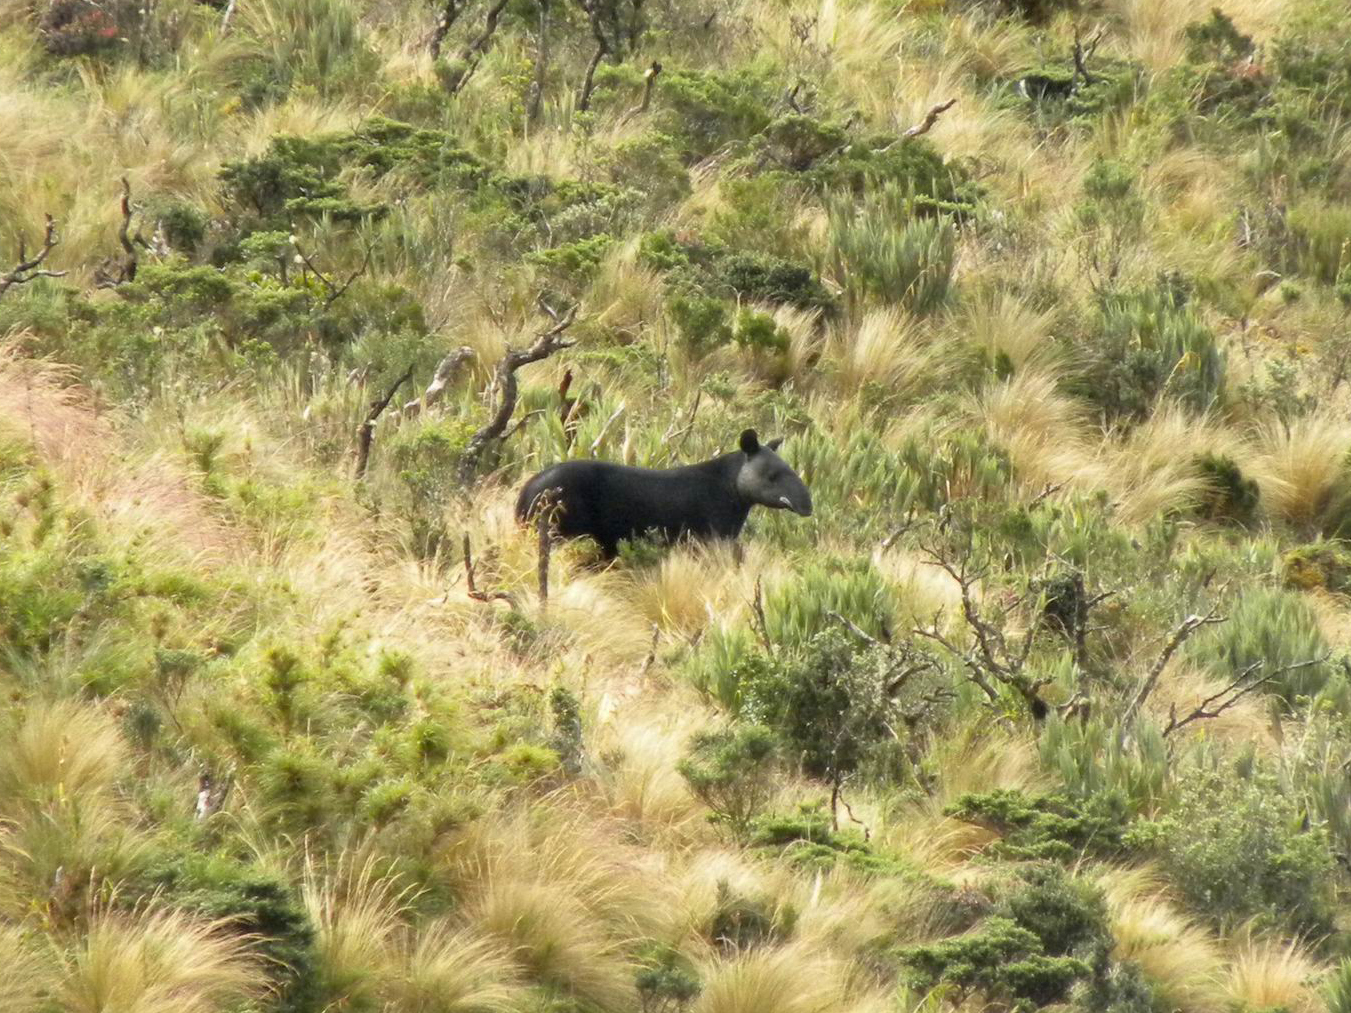 The endangered mountain tapir